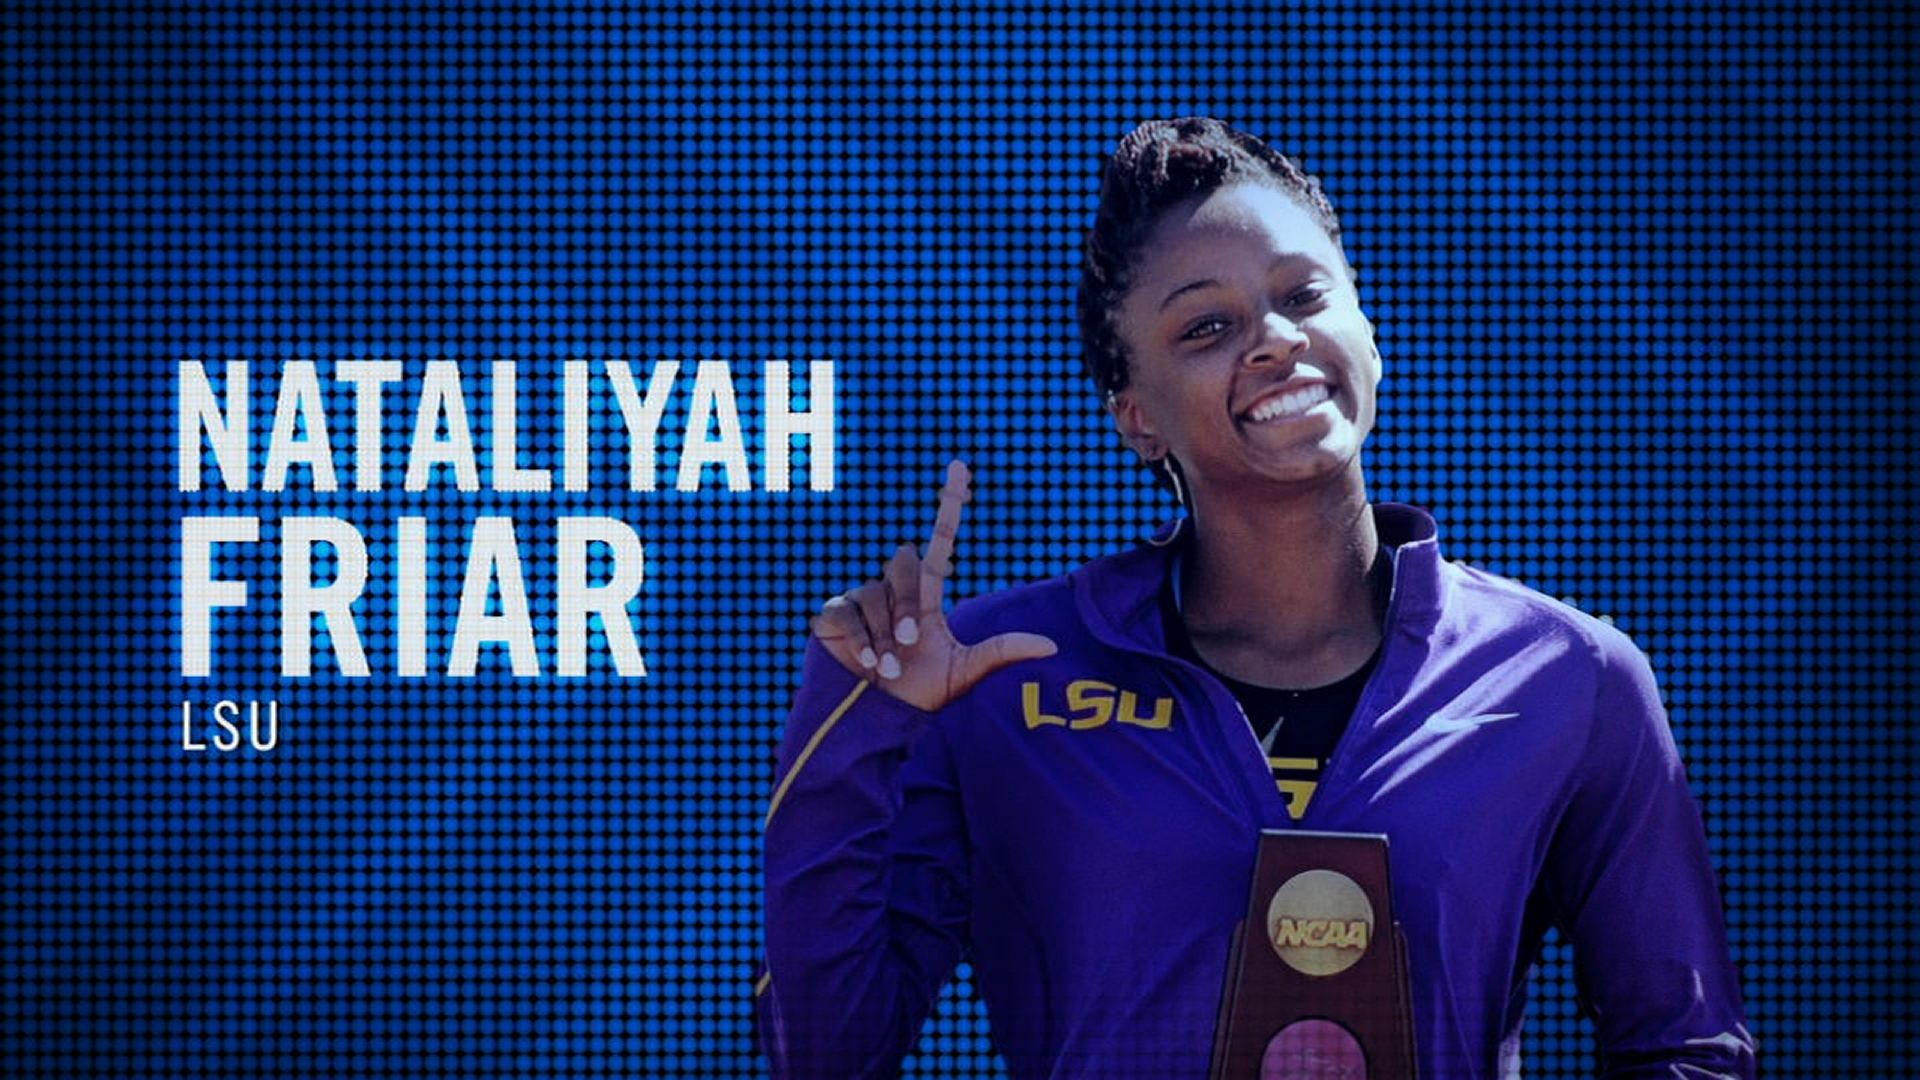 I am the SEC: LSU's Nataliyah Friar